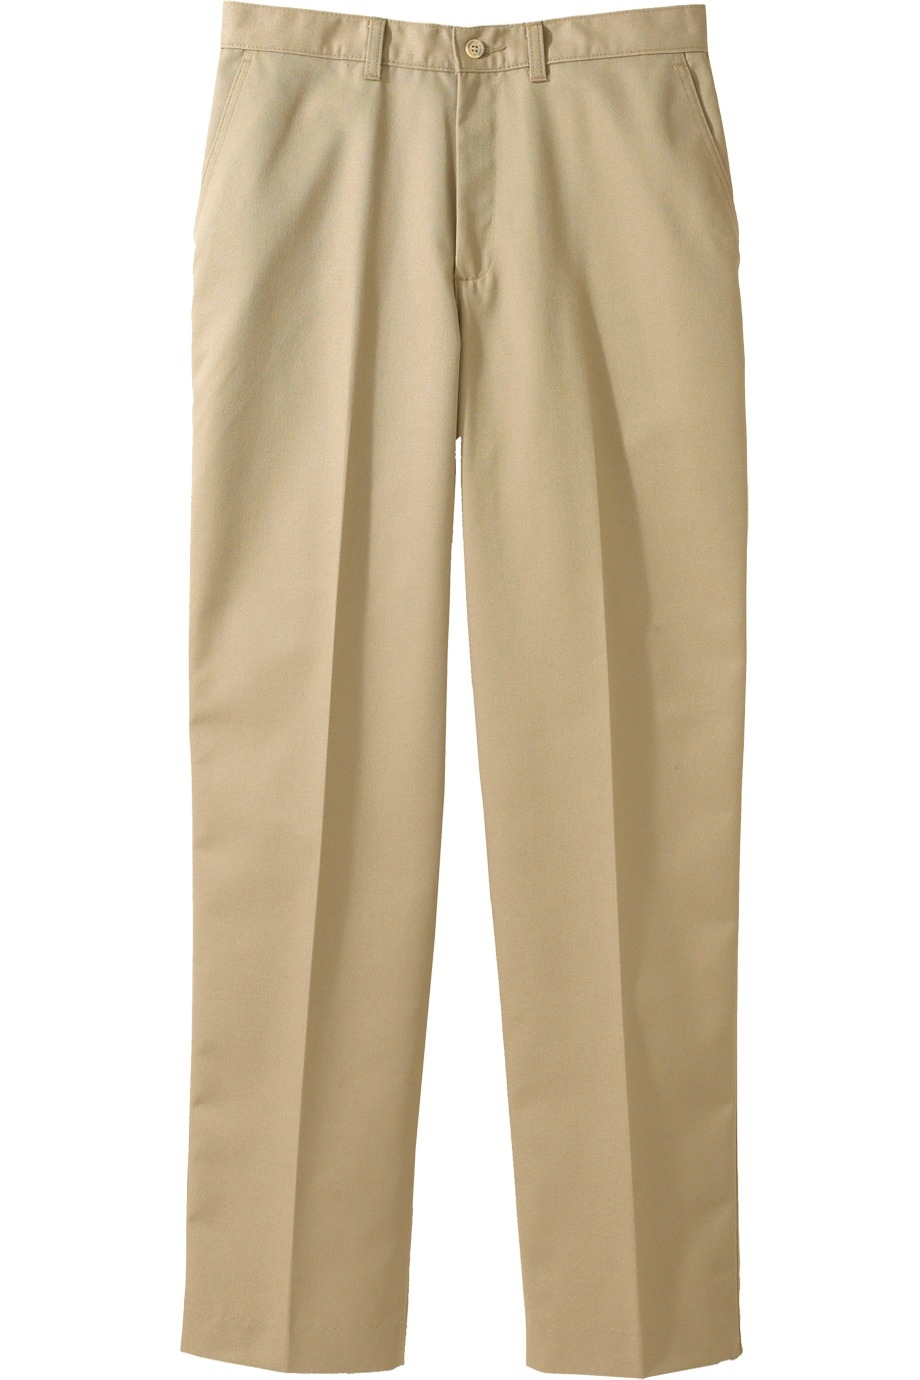 Edwards Garment 2570 - Men's Blended Chino Flat Front ...